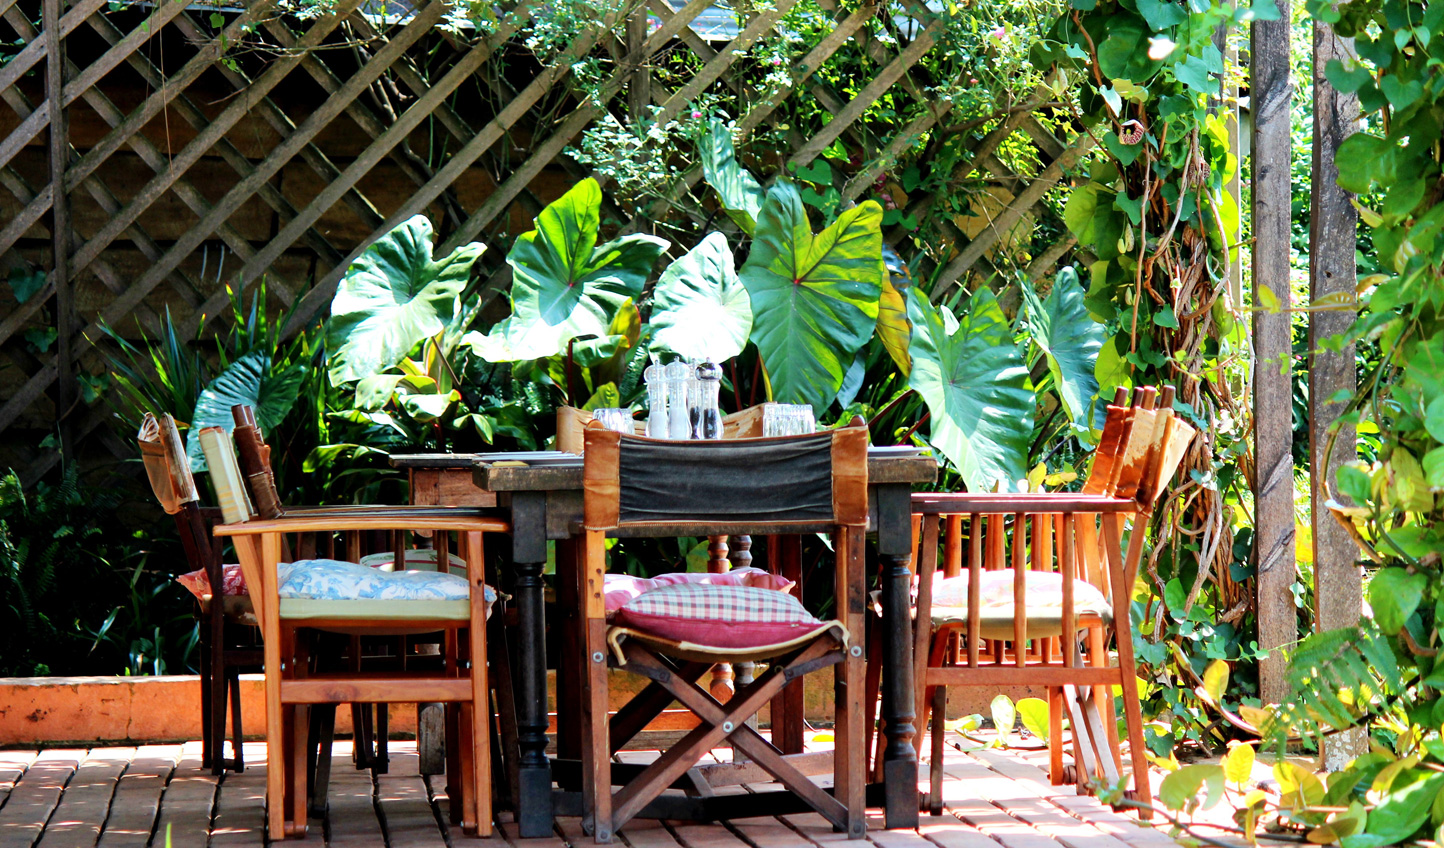 Dine al fresco amid the tropical gardens